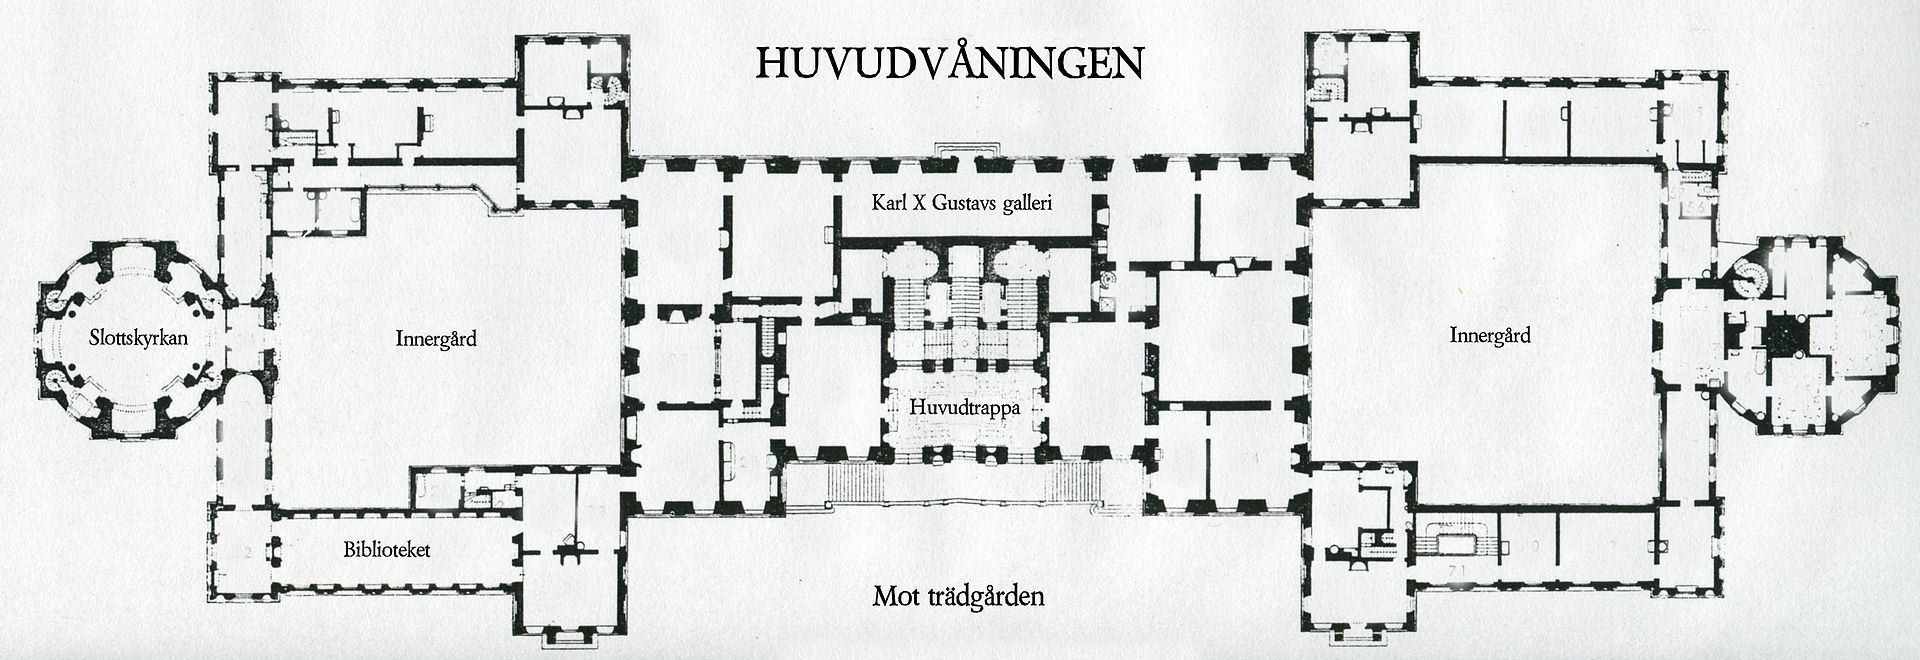 Drottningholm palace the floor plan main ground floor for Palace floor plans